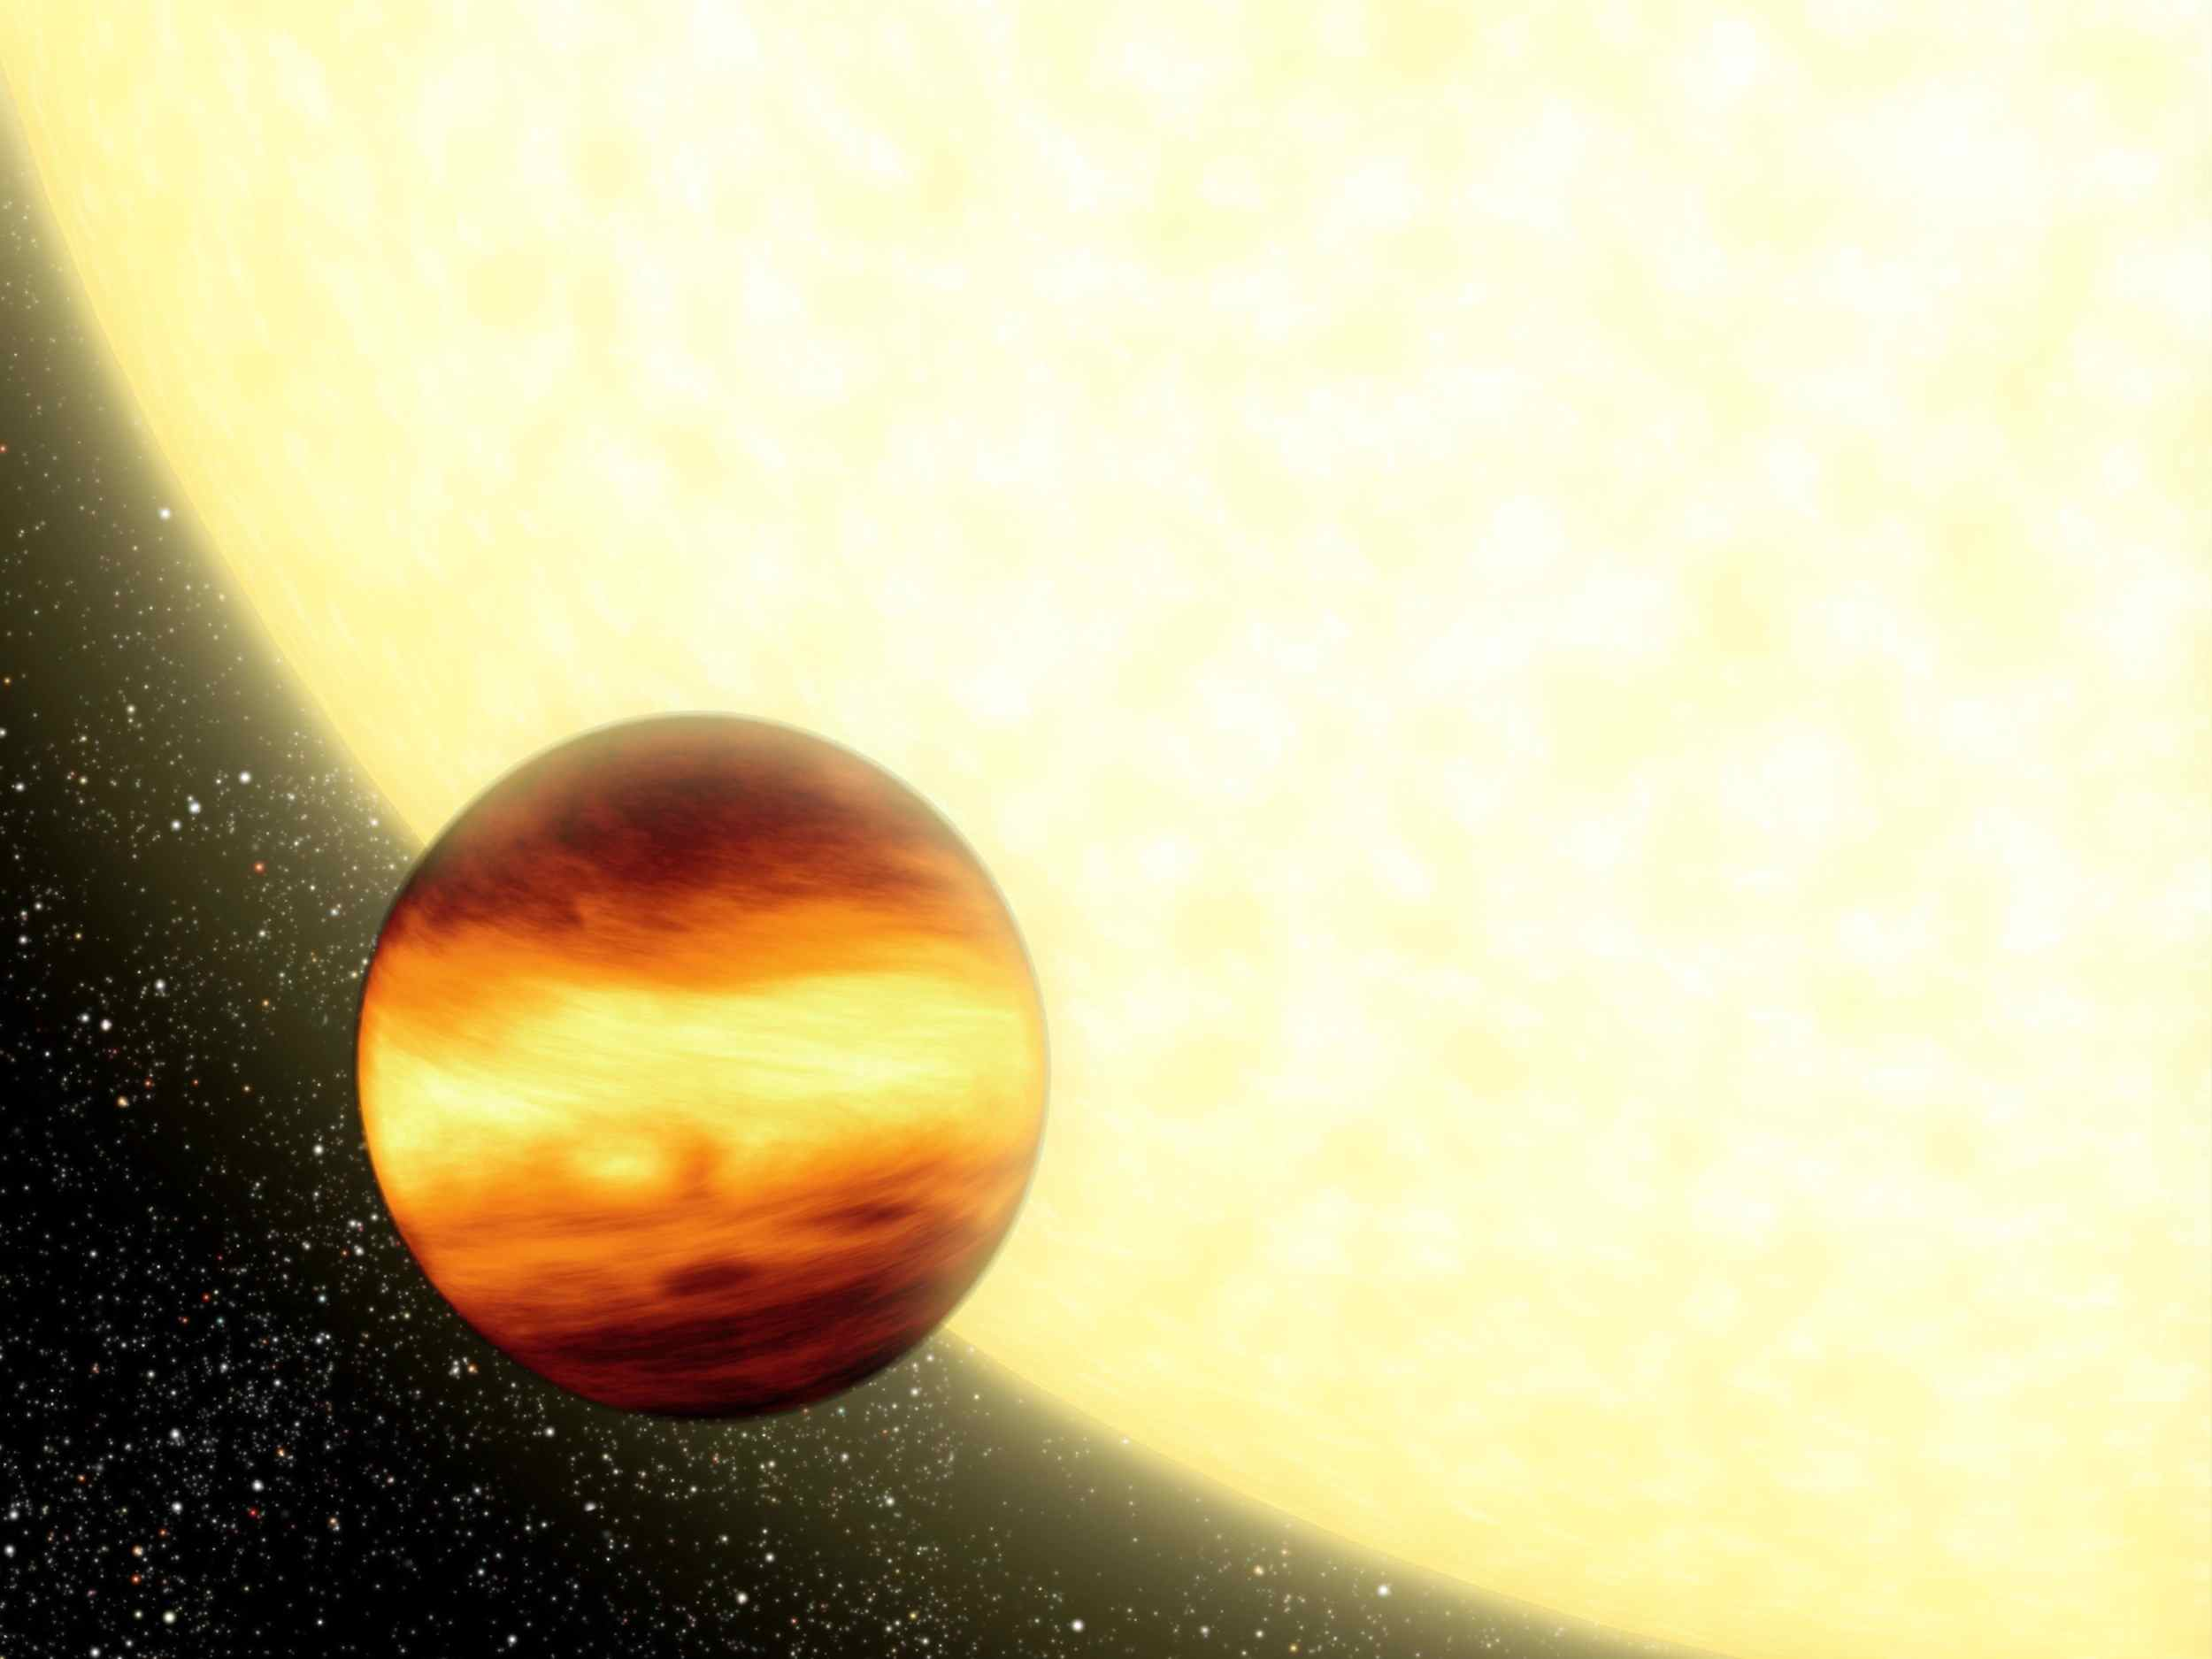 This artist's concept shows a gas-giant planet orbiting very close to its parent star, creating searingly hot conditions on the planet's surface